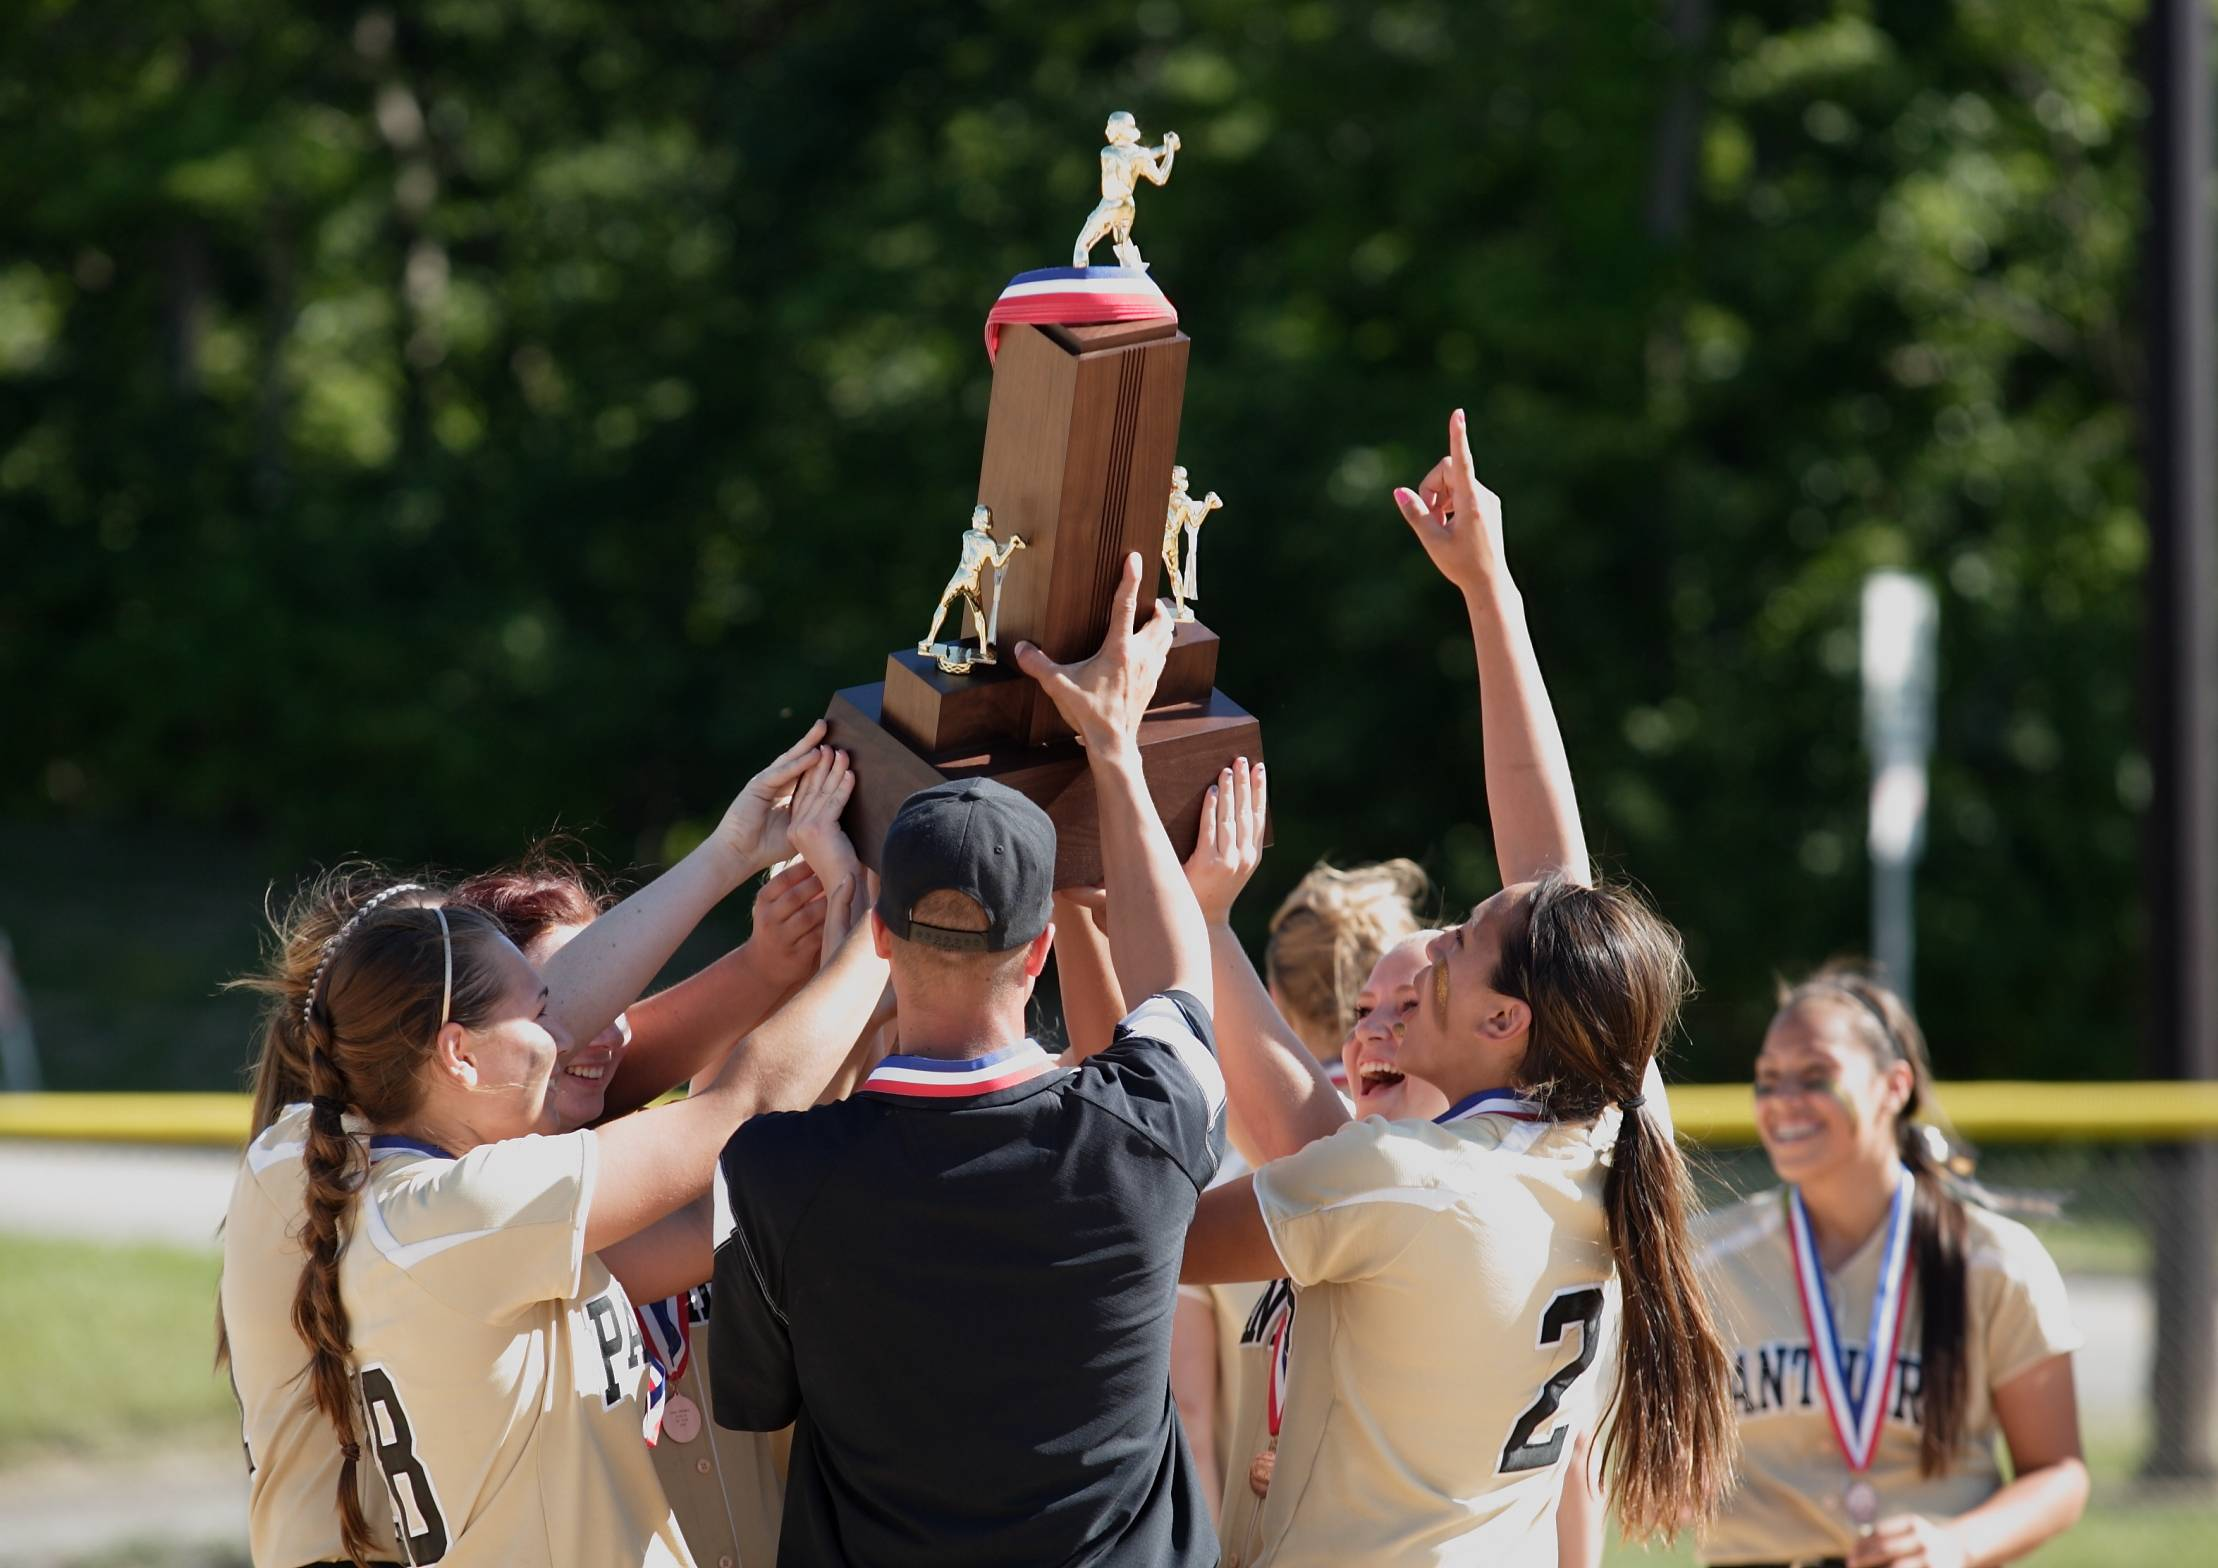 Members of the Glenbard North softball team hoist their third-place trophy after their IHSA Class 4A third-place game on Saturday. Glenbard North defeated Lincoln-Way East, 6-0.